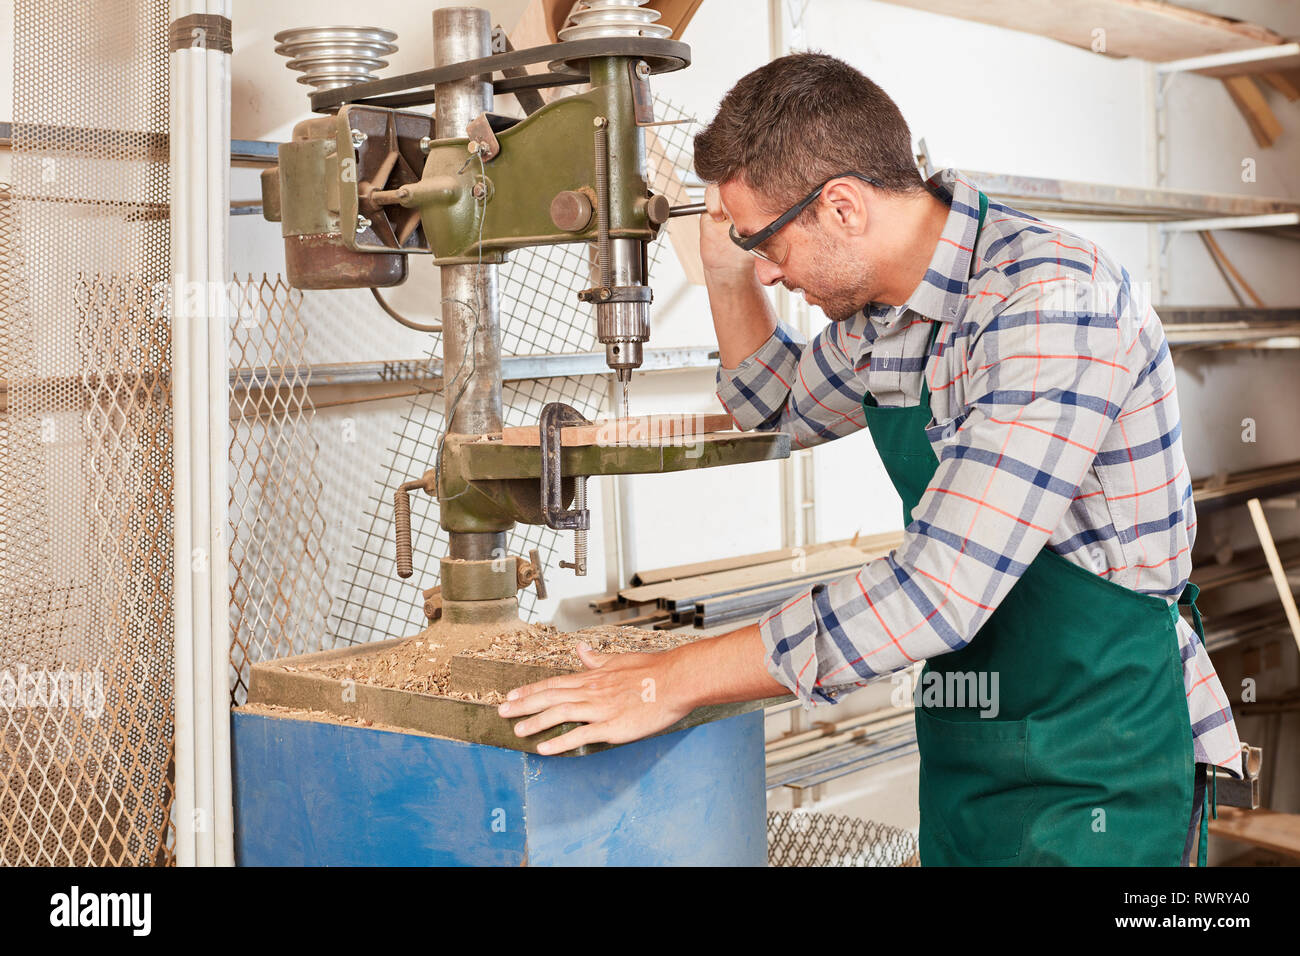 Man as a carpenter works on a drill in the carpentry workshop - Stock Image